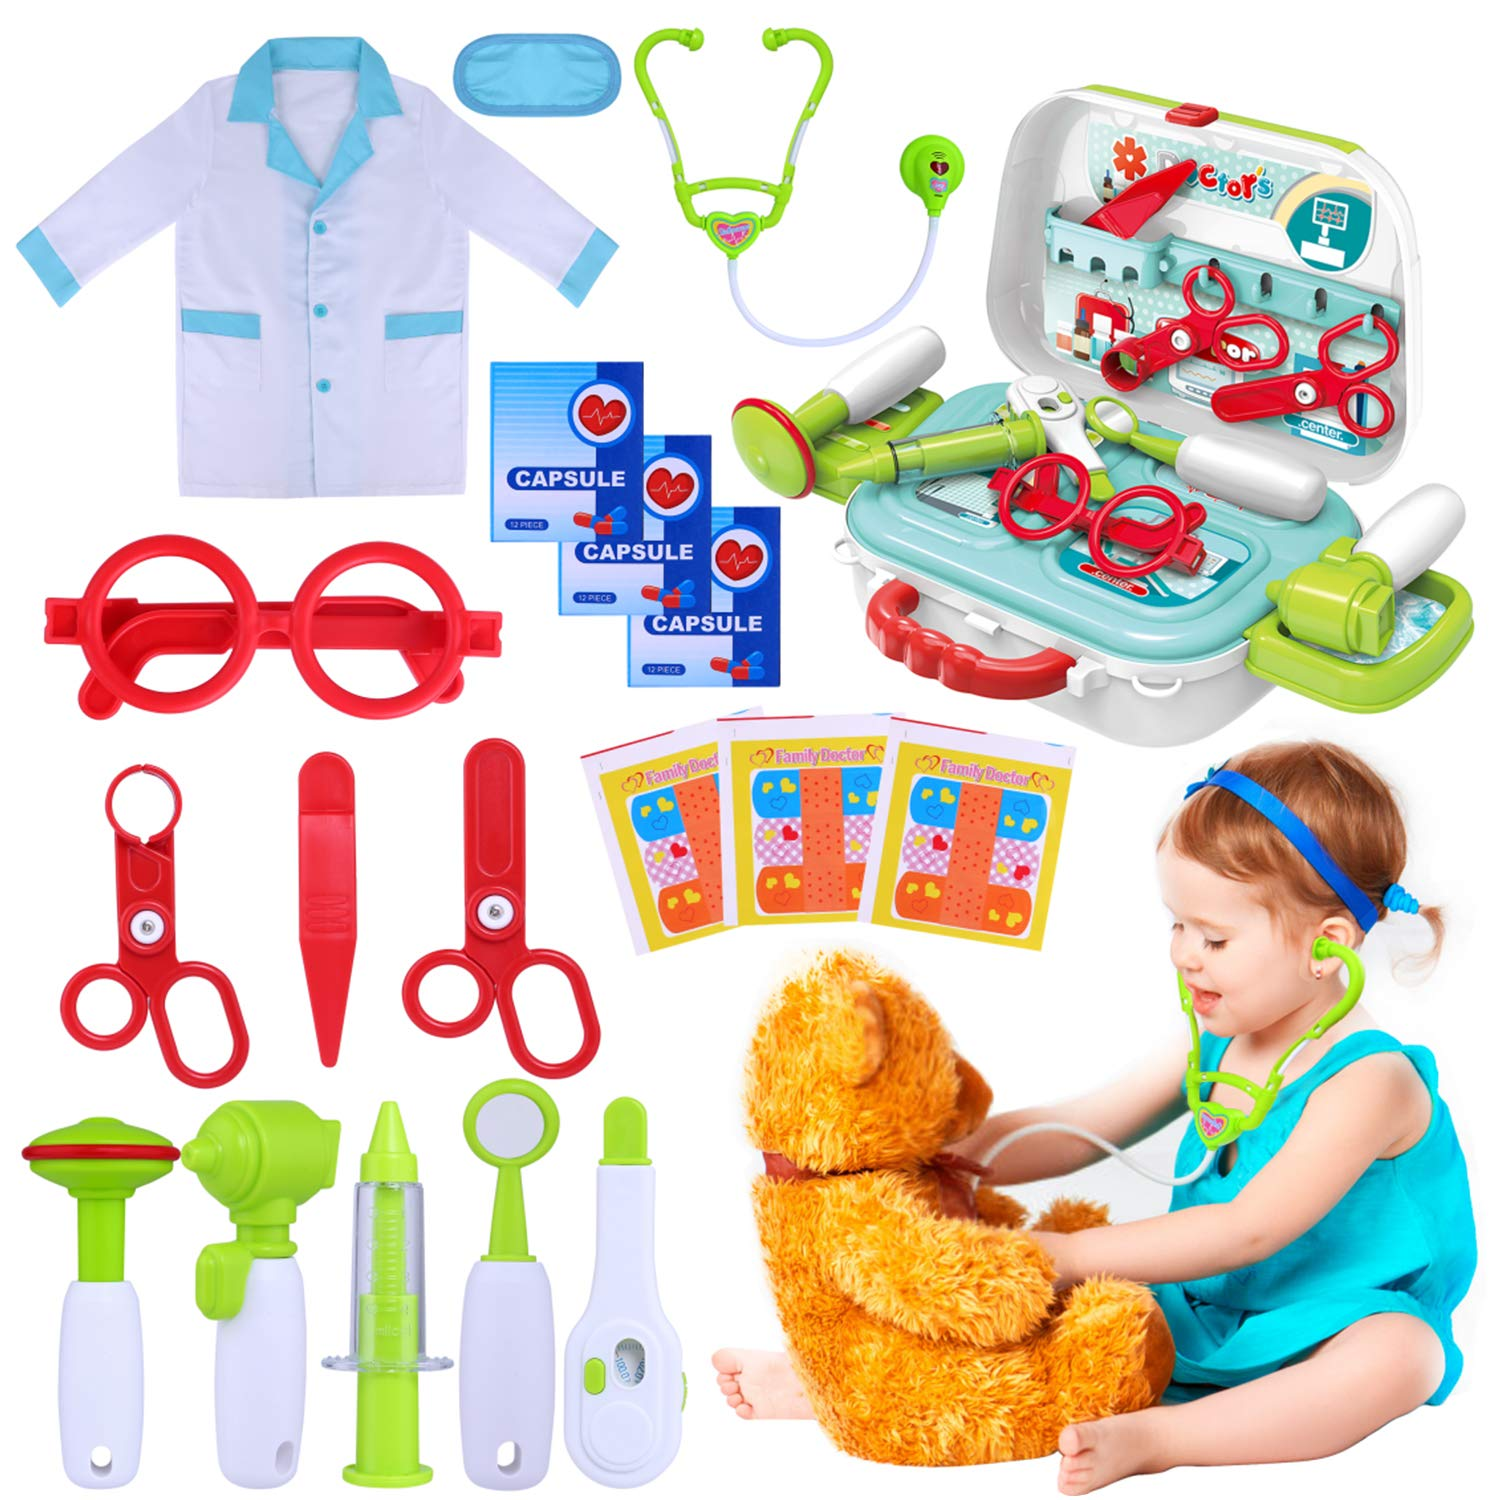 GINMIC Kids Doctor Kit, 22 Piece Kids Pretend Play Toys, Medical Dr Toy Kit with Carry Case, Role Play Doctor Costume for Little Girls, Boys, School Classroom by GINMIC